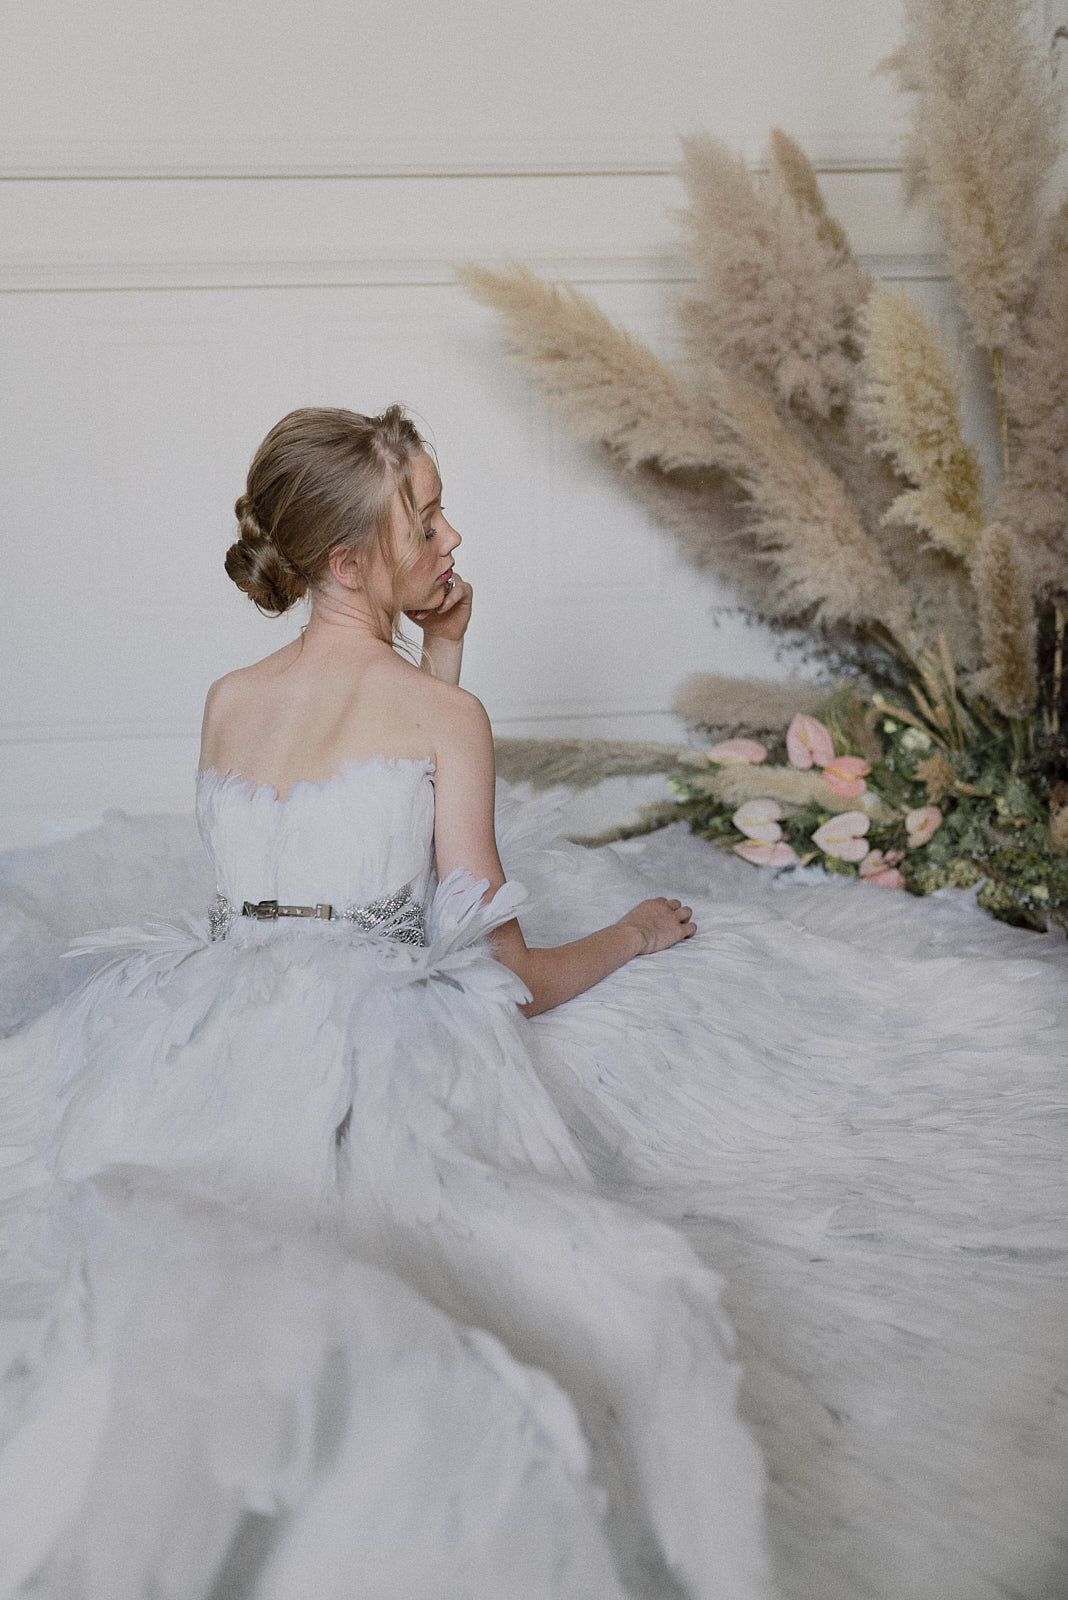 Sephory Photography- Swan Lake Wedding- Ballet Wedding-Unique Bridal Wear- Quirky Wedding Dress- Unique Wedding Dress- Glamorous Wedding- Unconventional Wedding